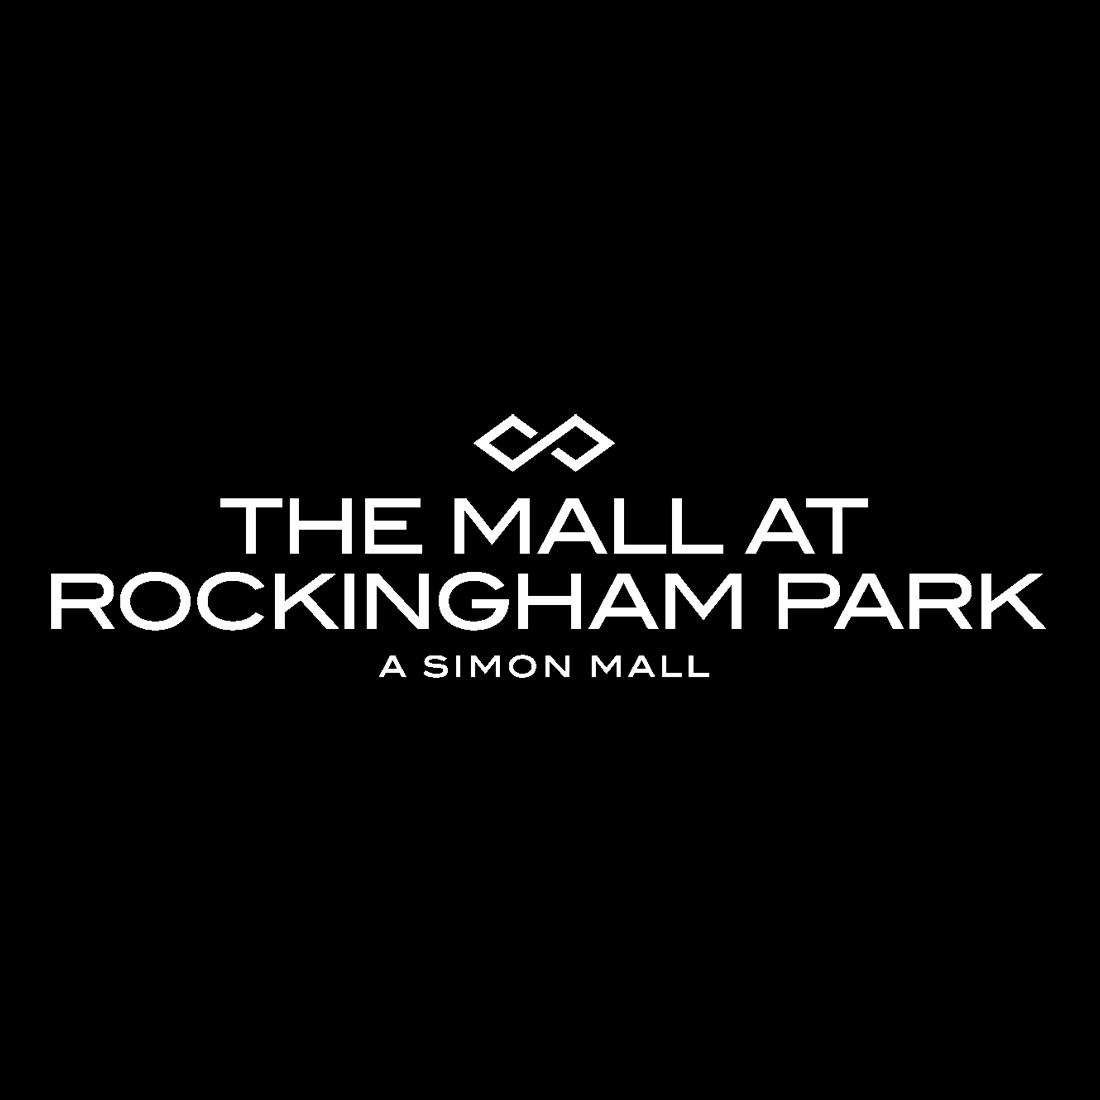 The Mall at Rockingham Park image 7